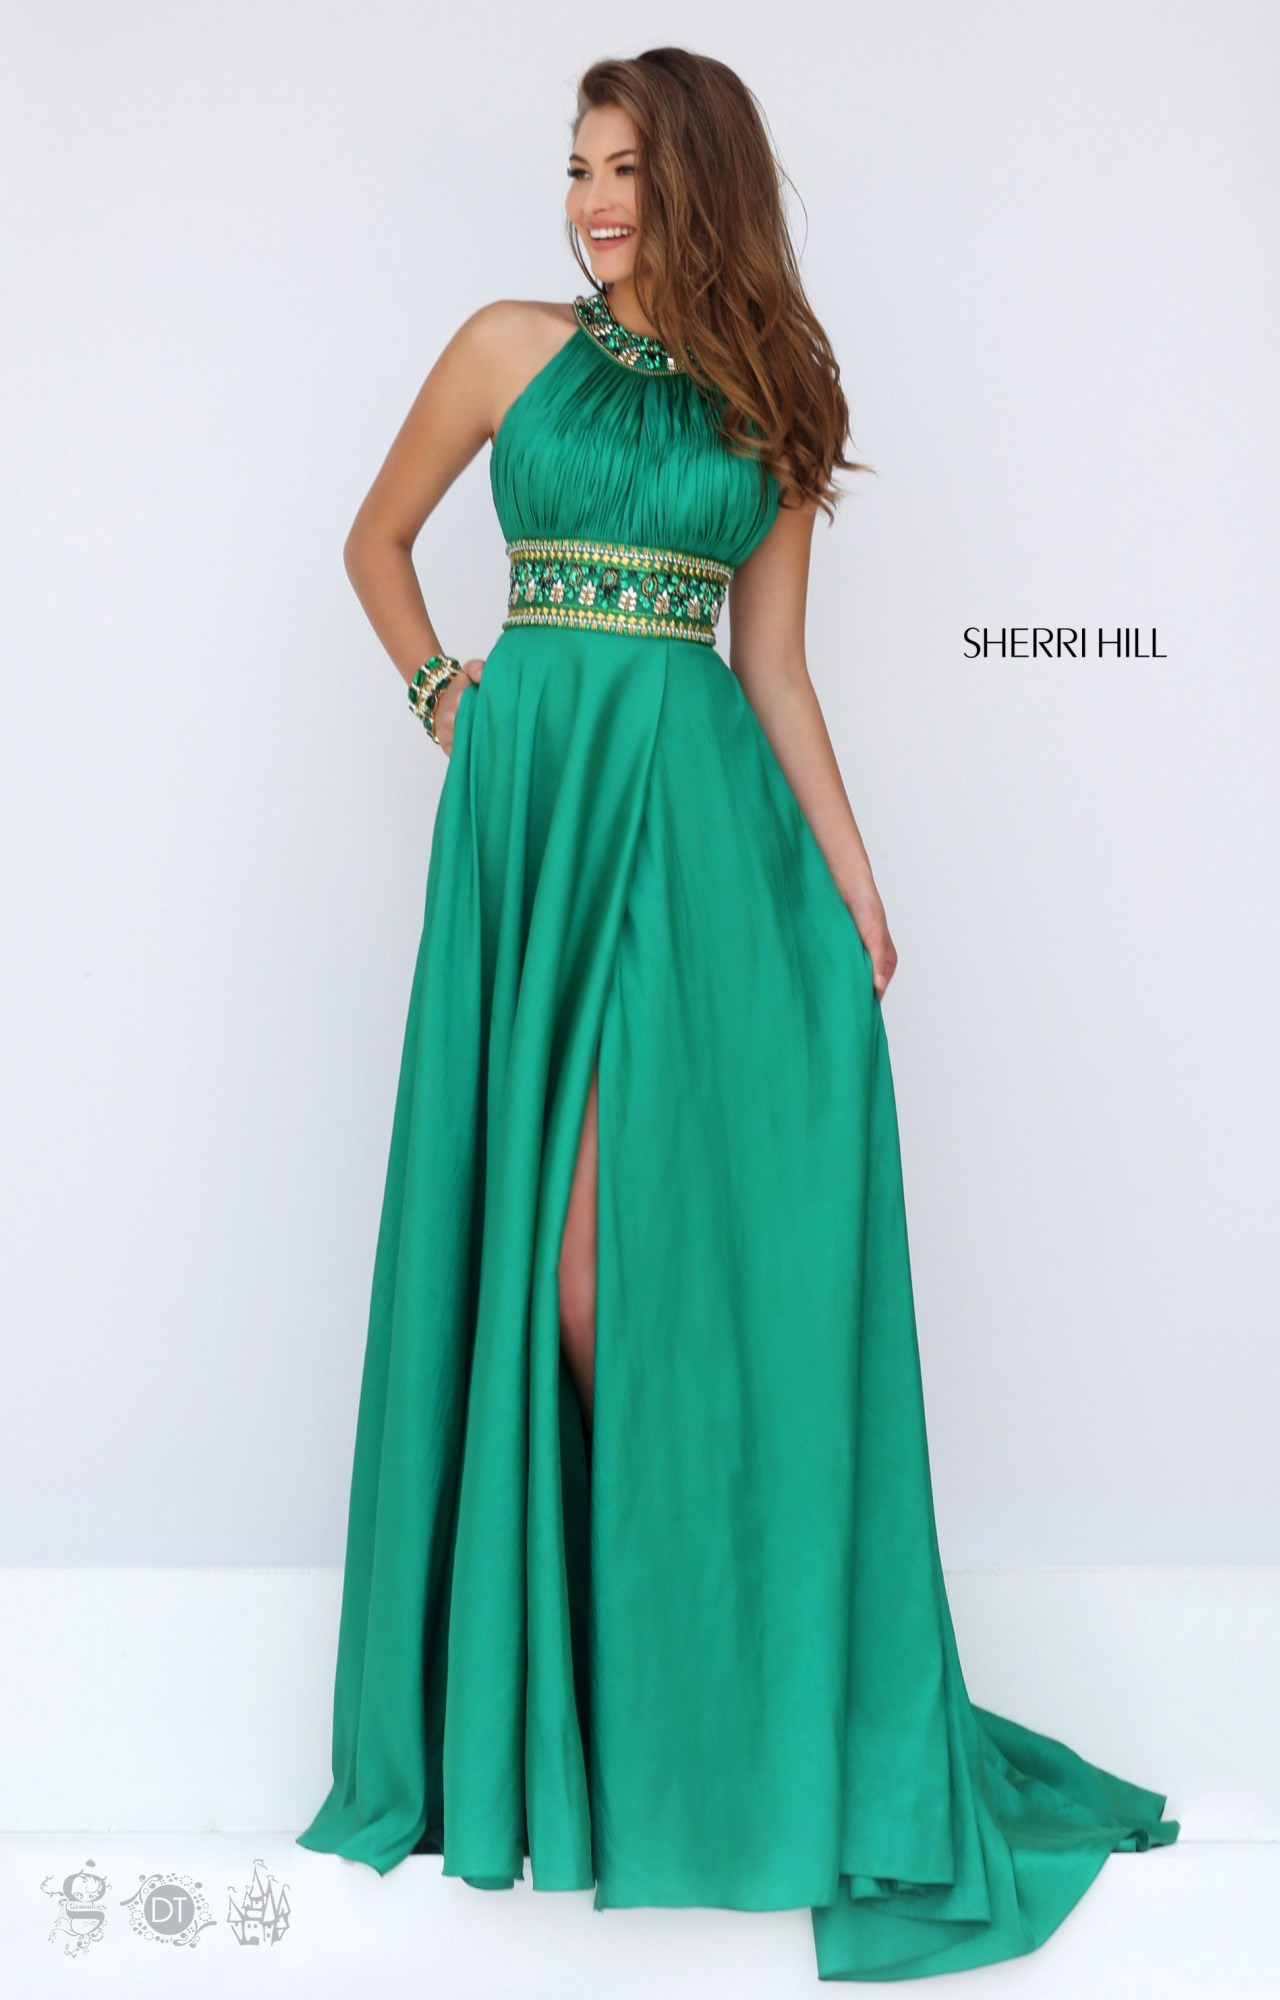 Sherri Hill 11318 - Electric Lovers Gown Prom Dress